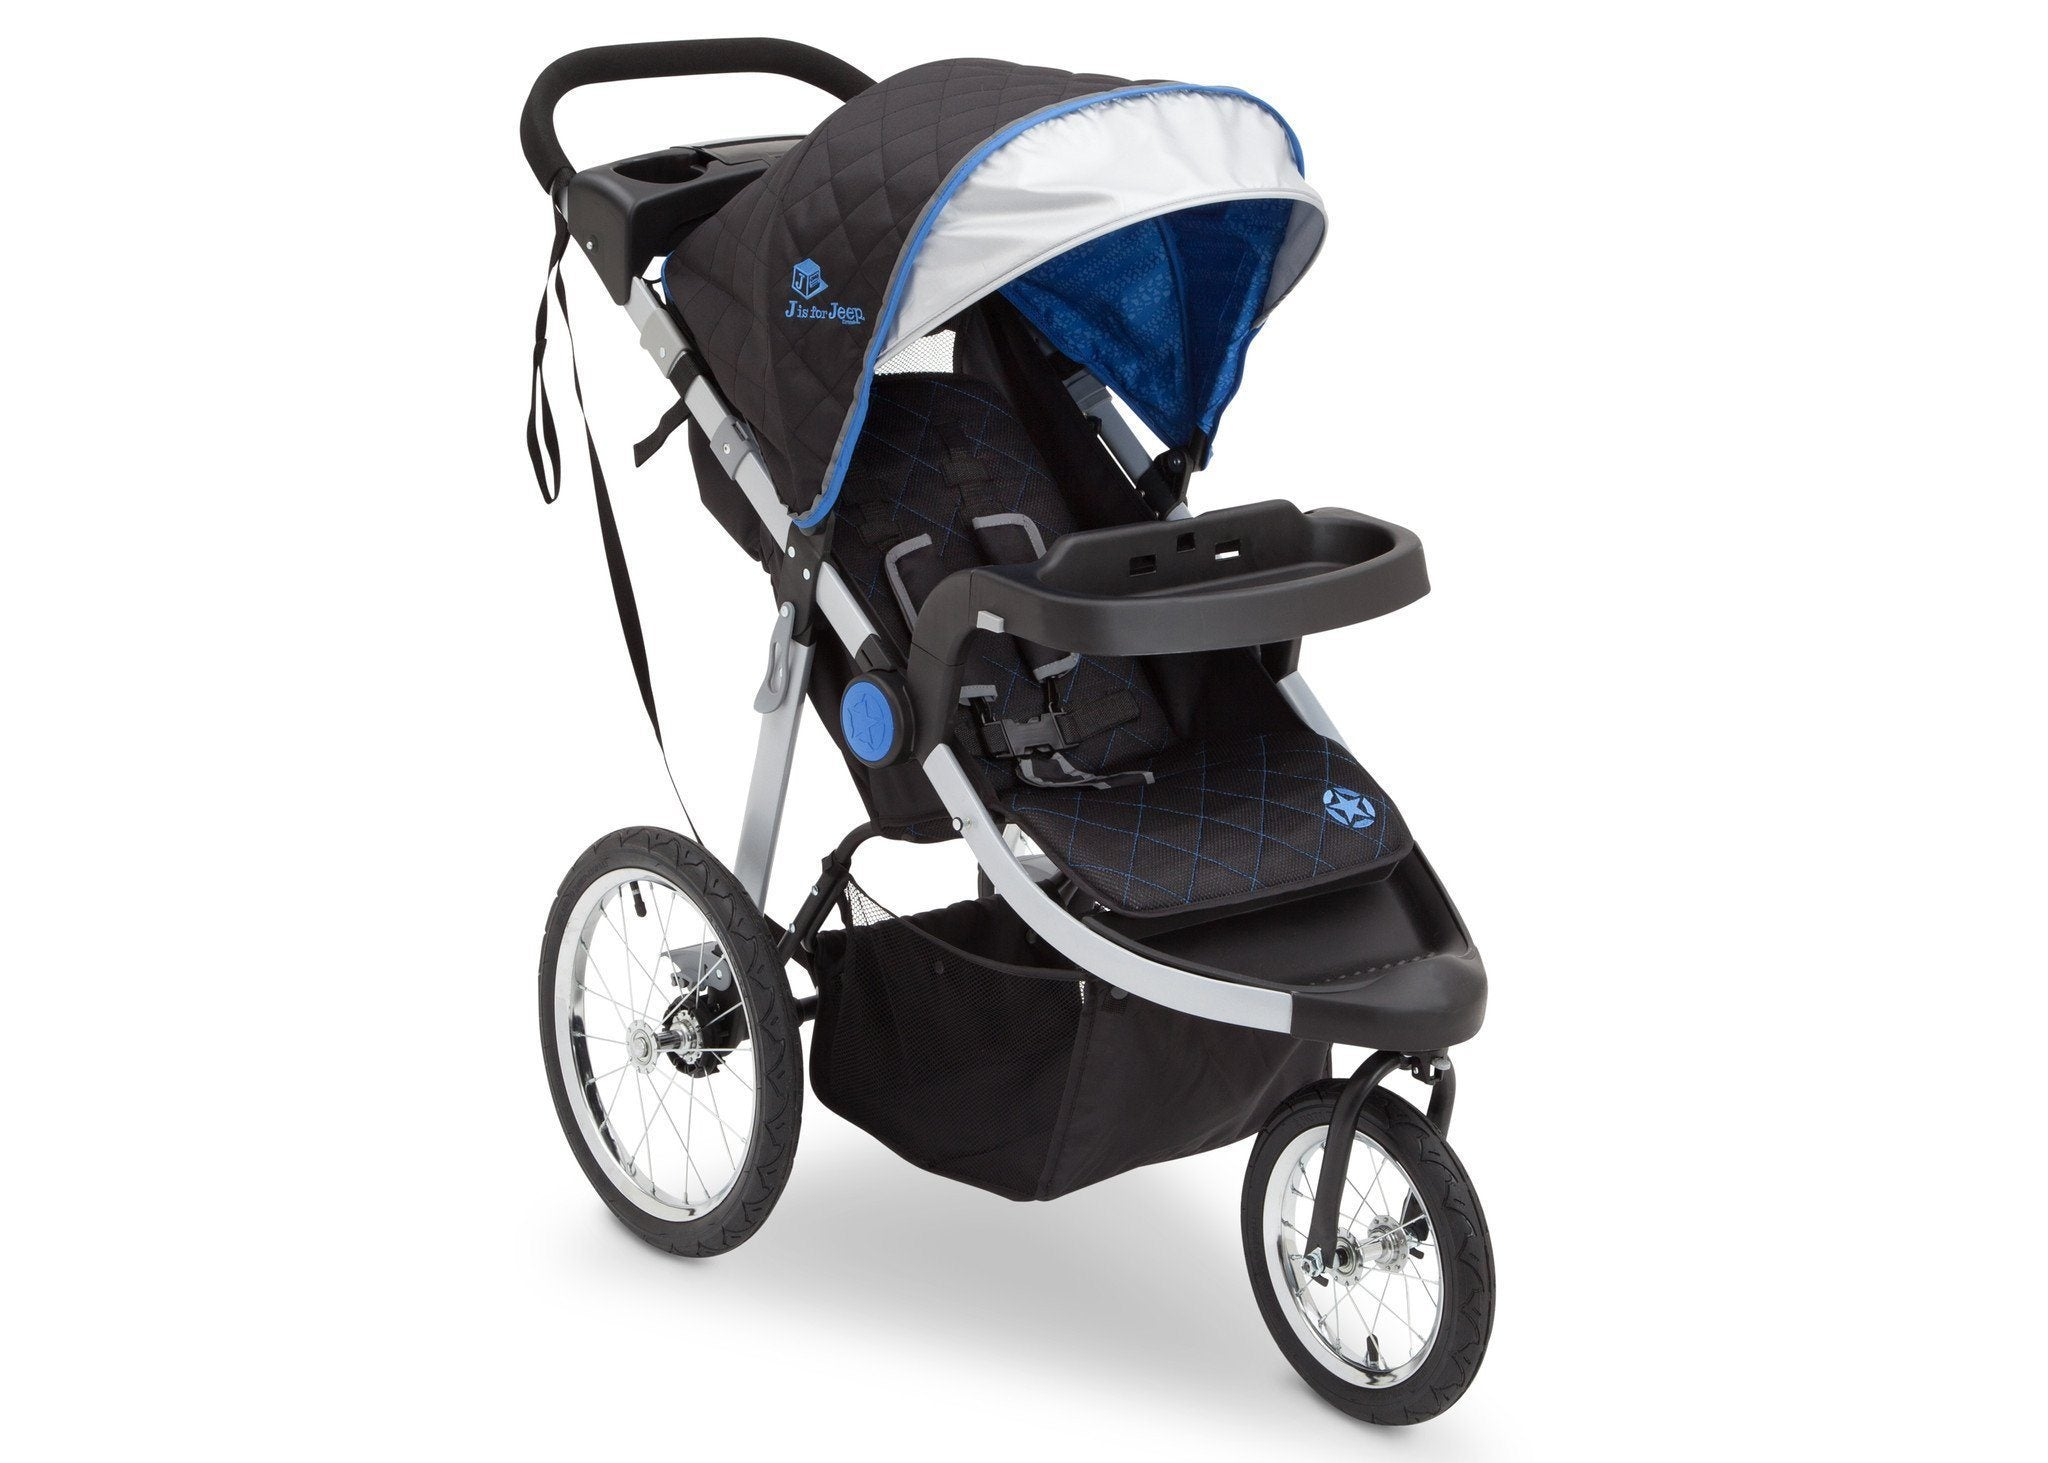 Delta Children J is for Jeep Brand Trek Blue Tonal (436) Cross Country All Terrain Jogging Stroller Right Side View, with Canopy, Child Tray and Sun Visor b1b